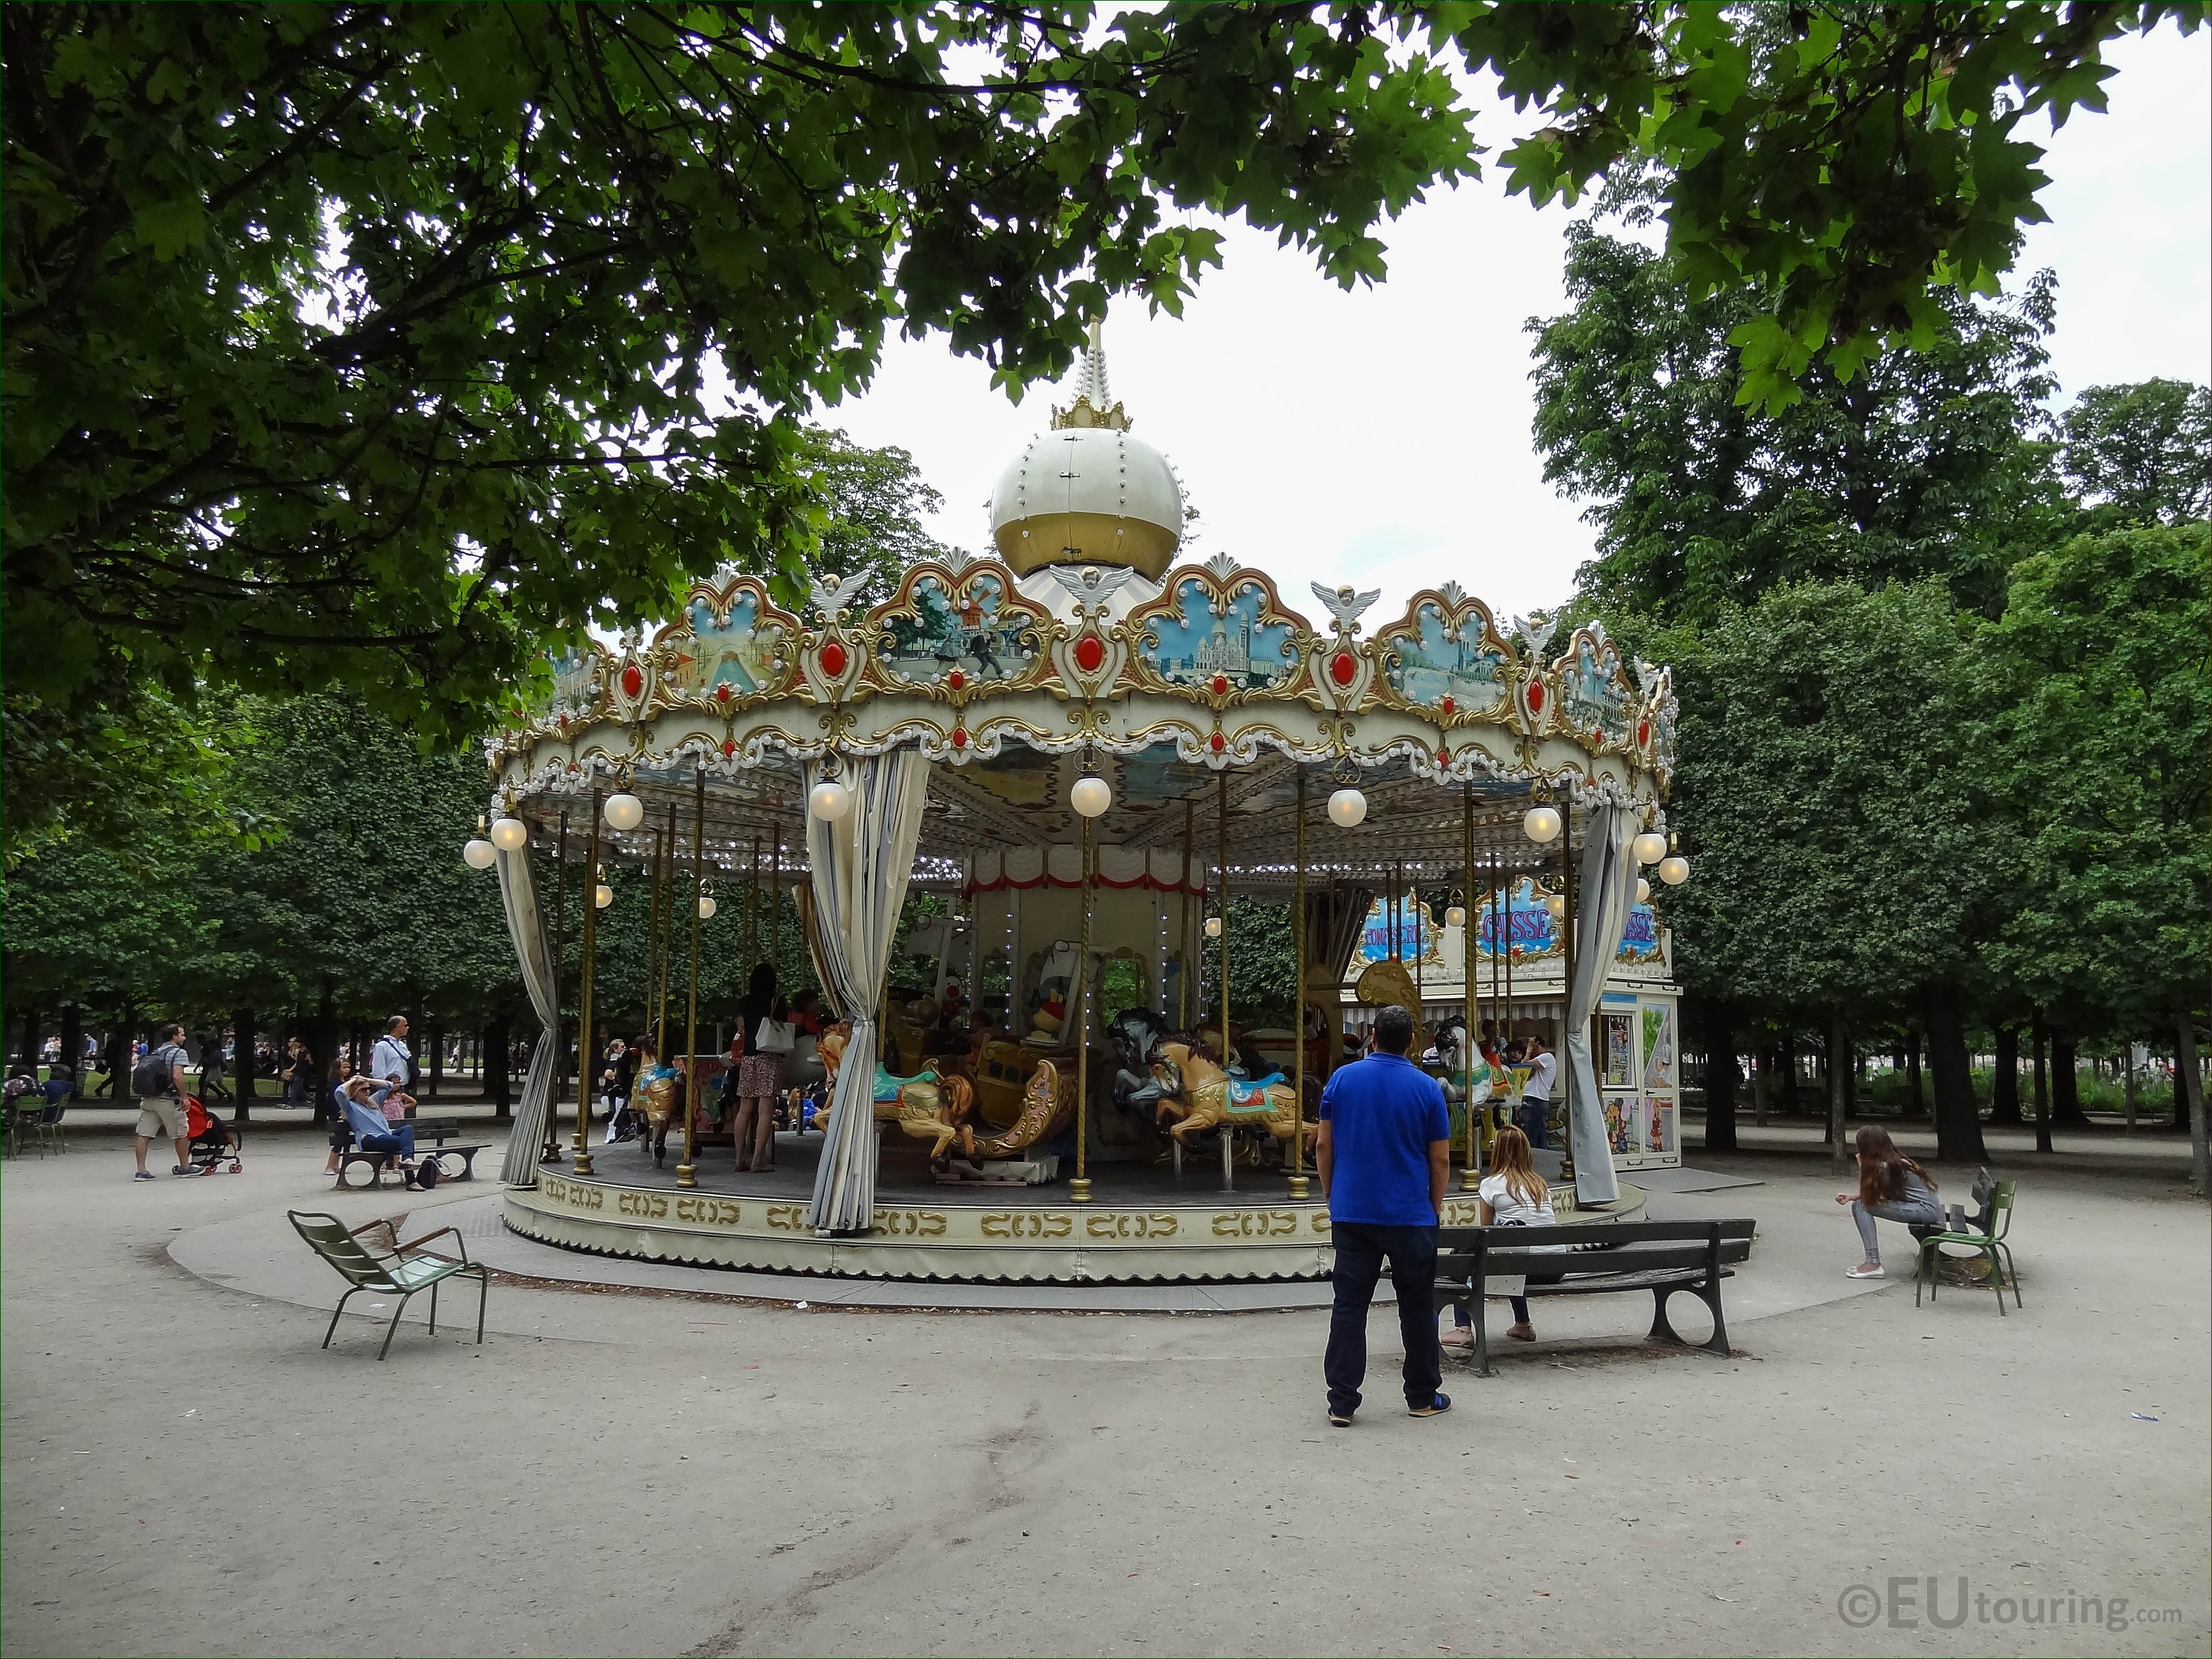 Traditional Merry-go-round in Jardin des Tuileries - Page 48